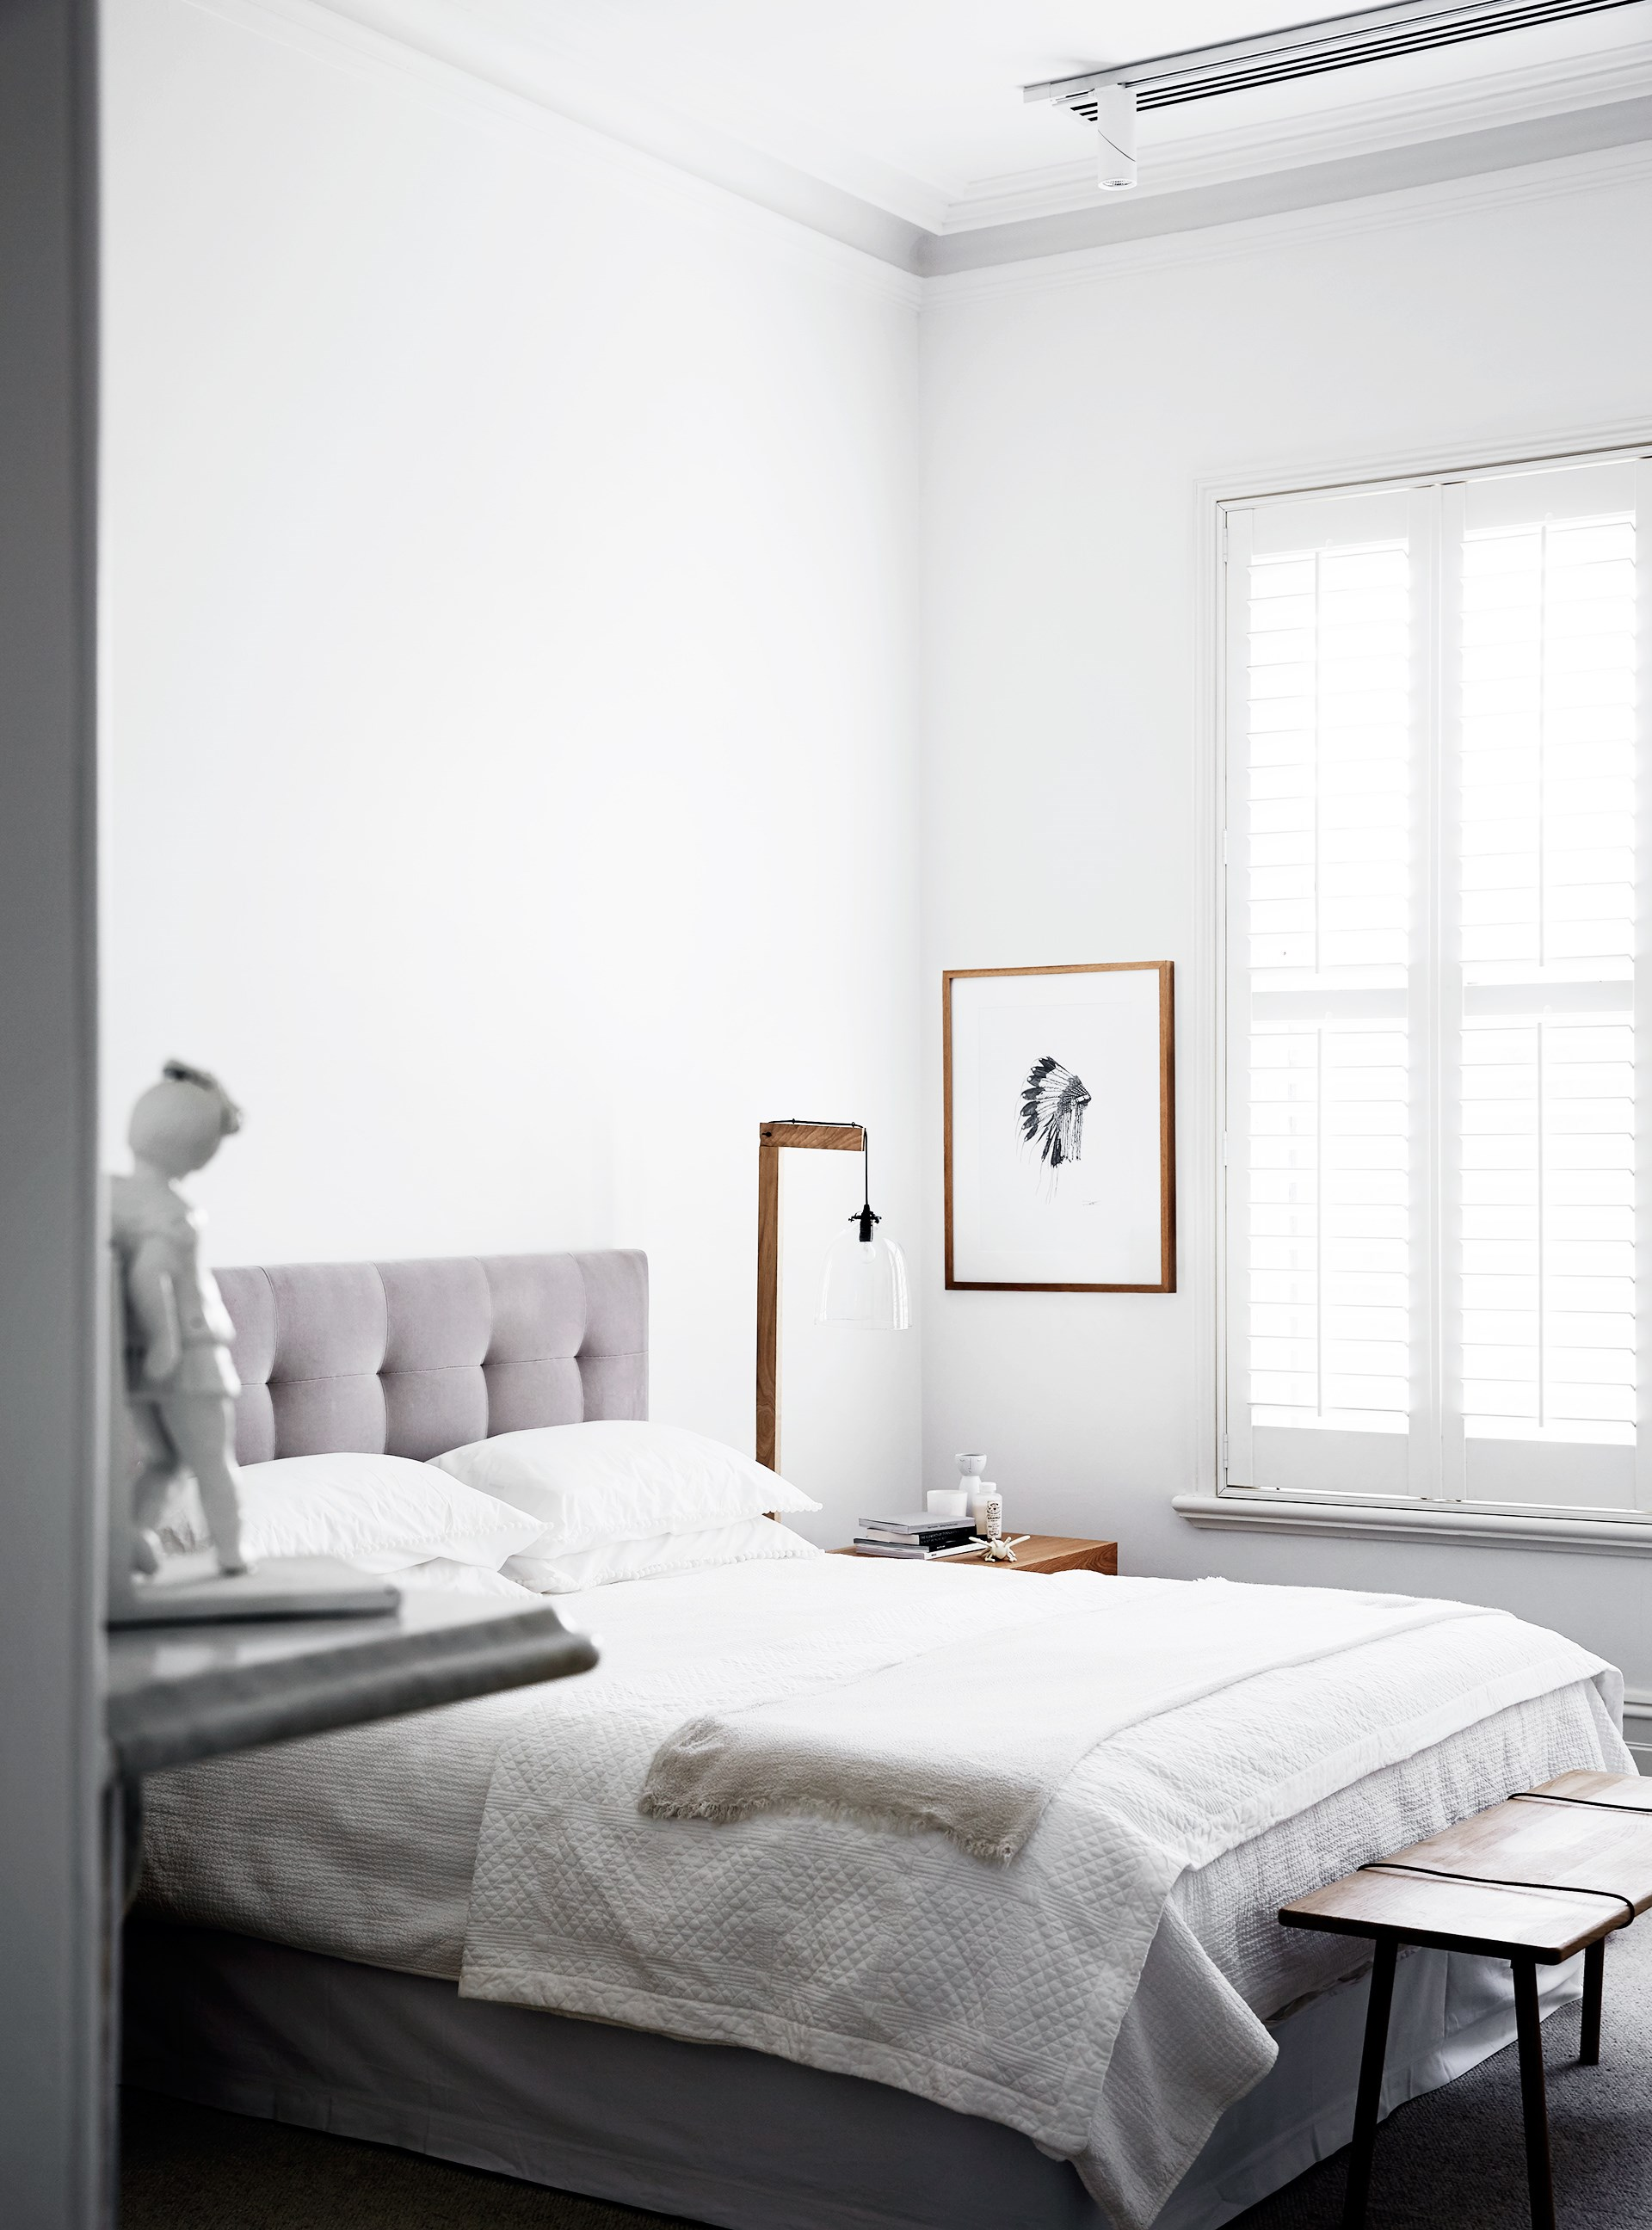 Whisper white is a fail-proof decorating formula, as seen in the bedroom of this [light-hearted luxury home](http://www.homestolove.com.au/a-light-hearted-luxury-home-3944). *Photo: Sharyn Cairns*